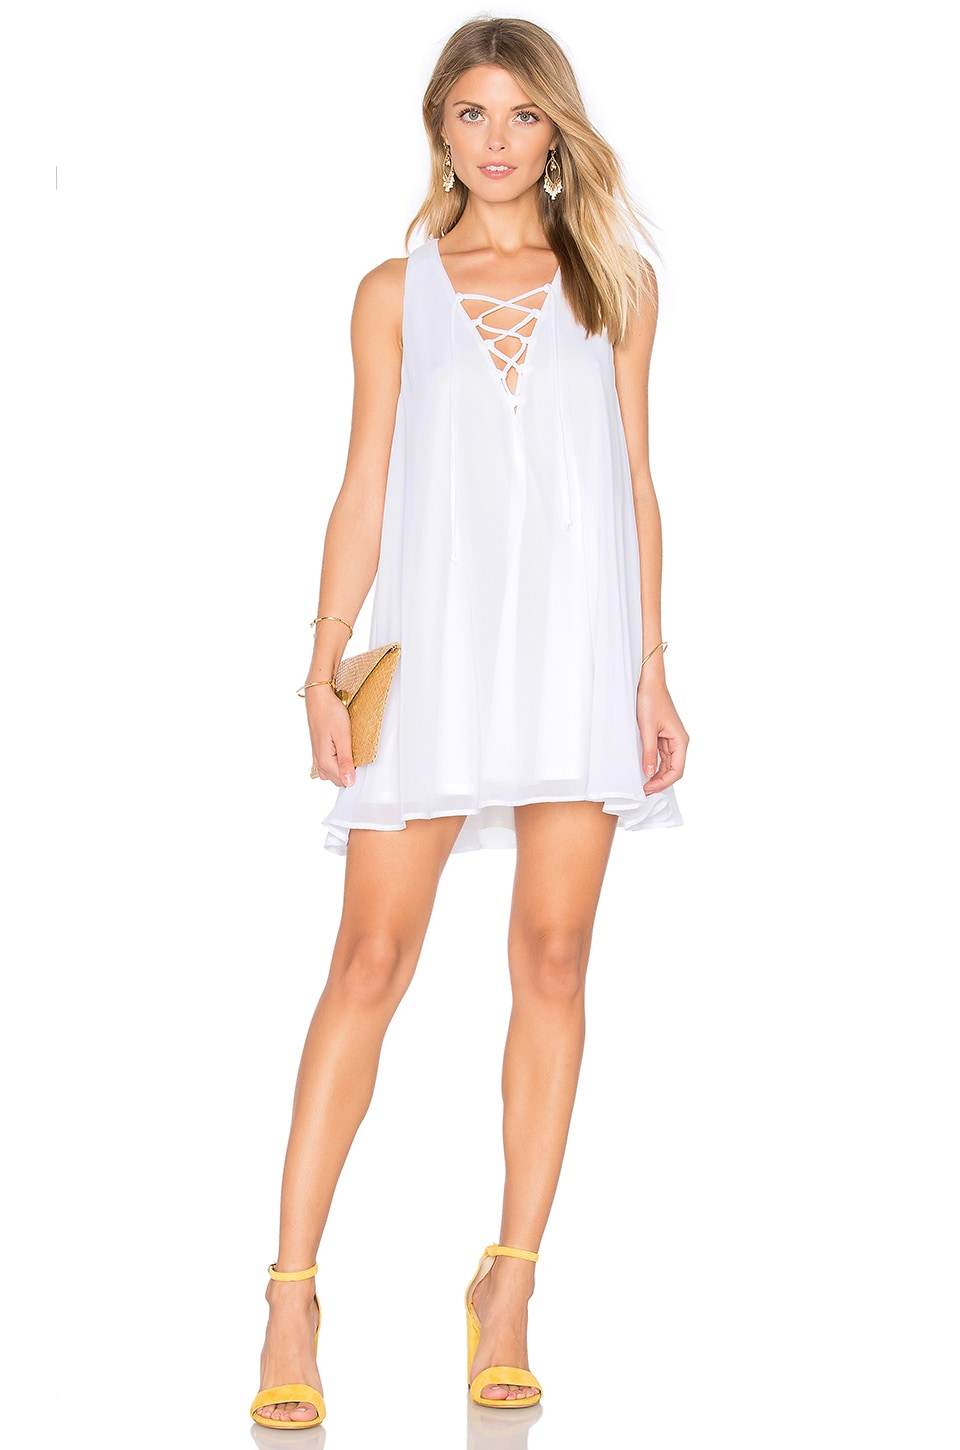 Show Me Your Mumu Rancho Mirage Lace Up Dress in White Chiffon